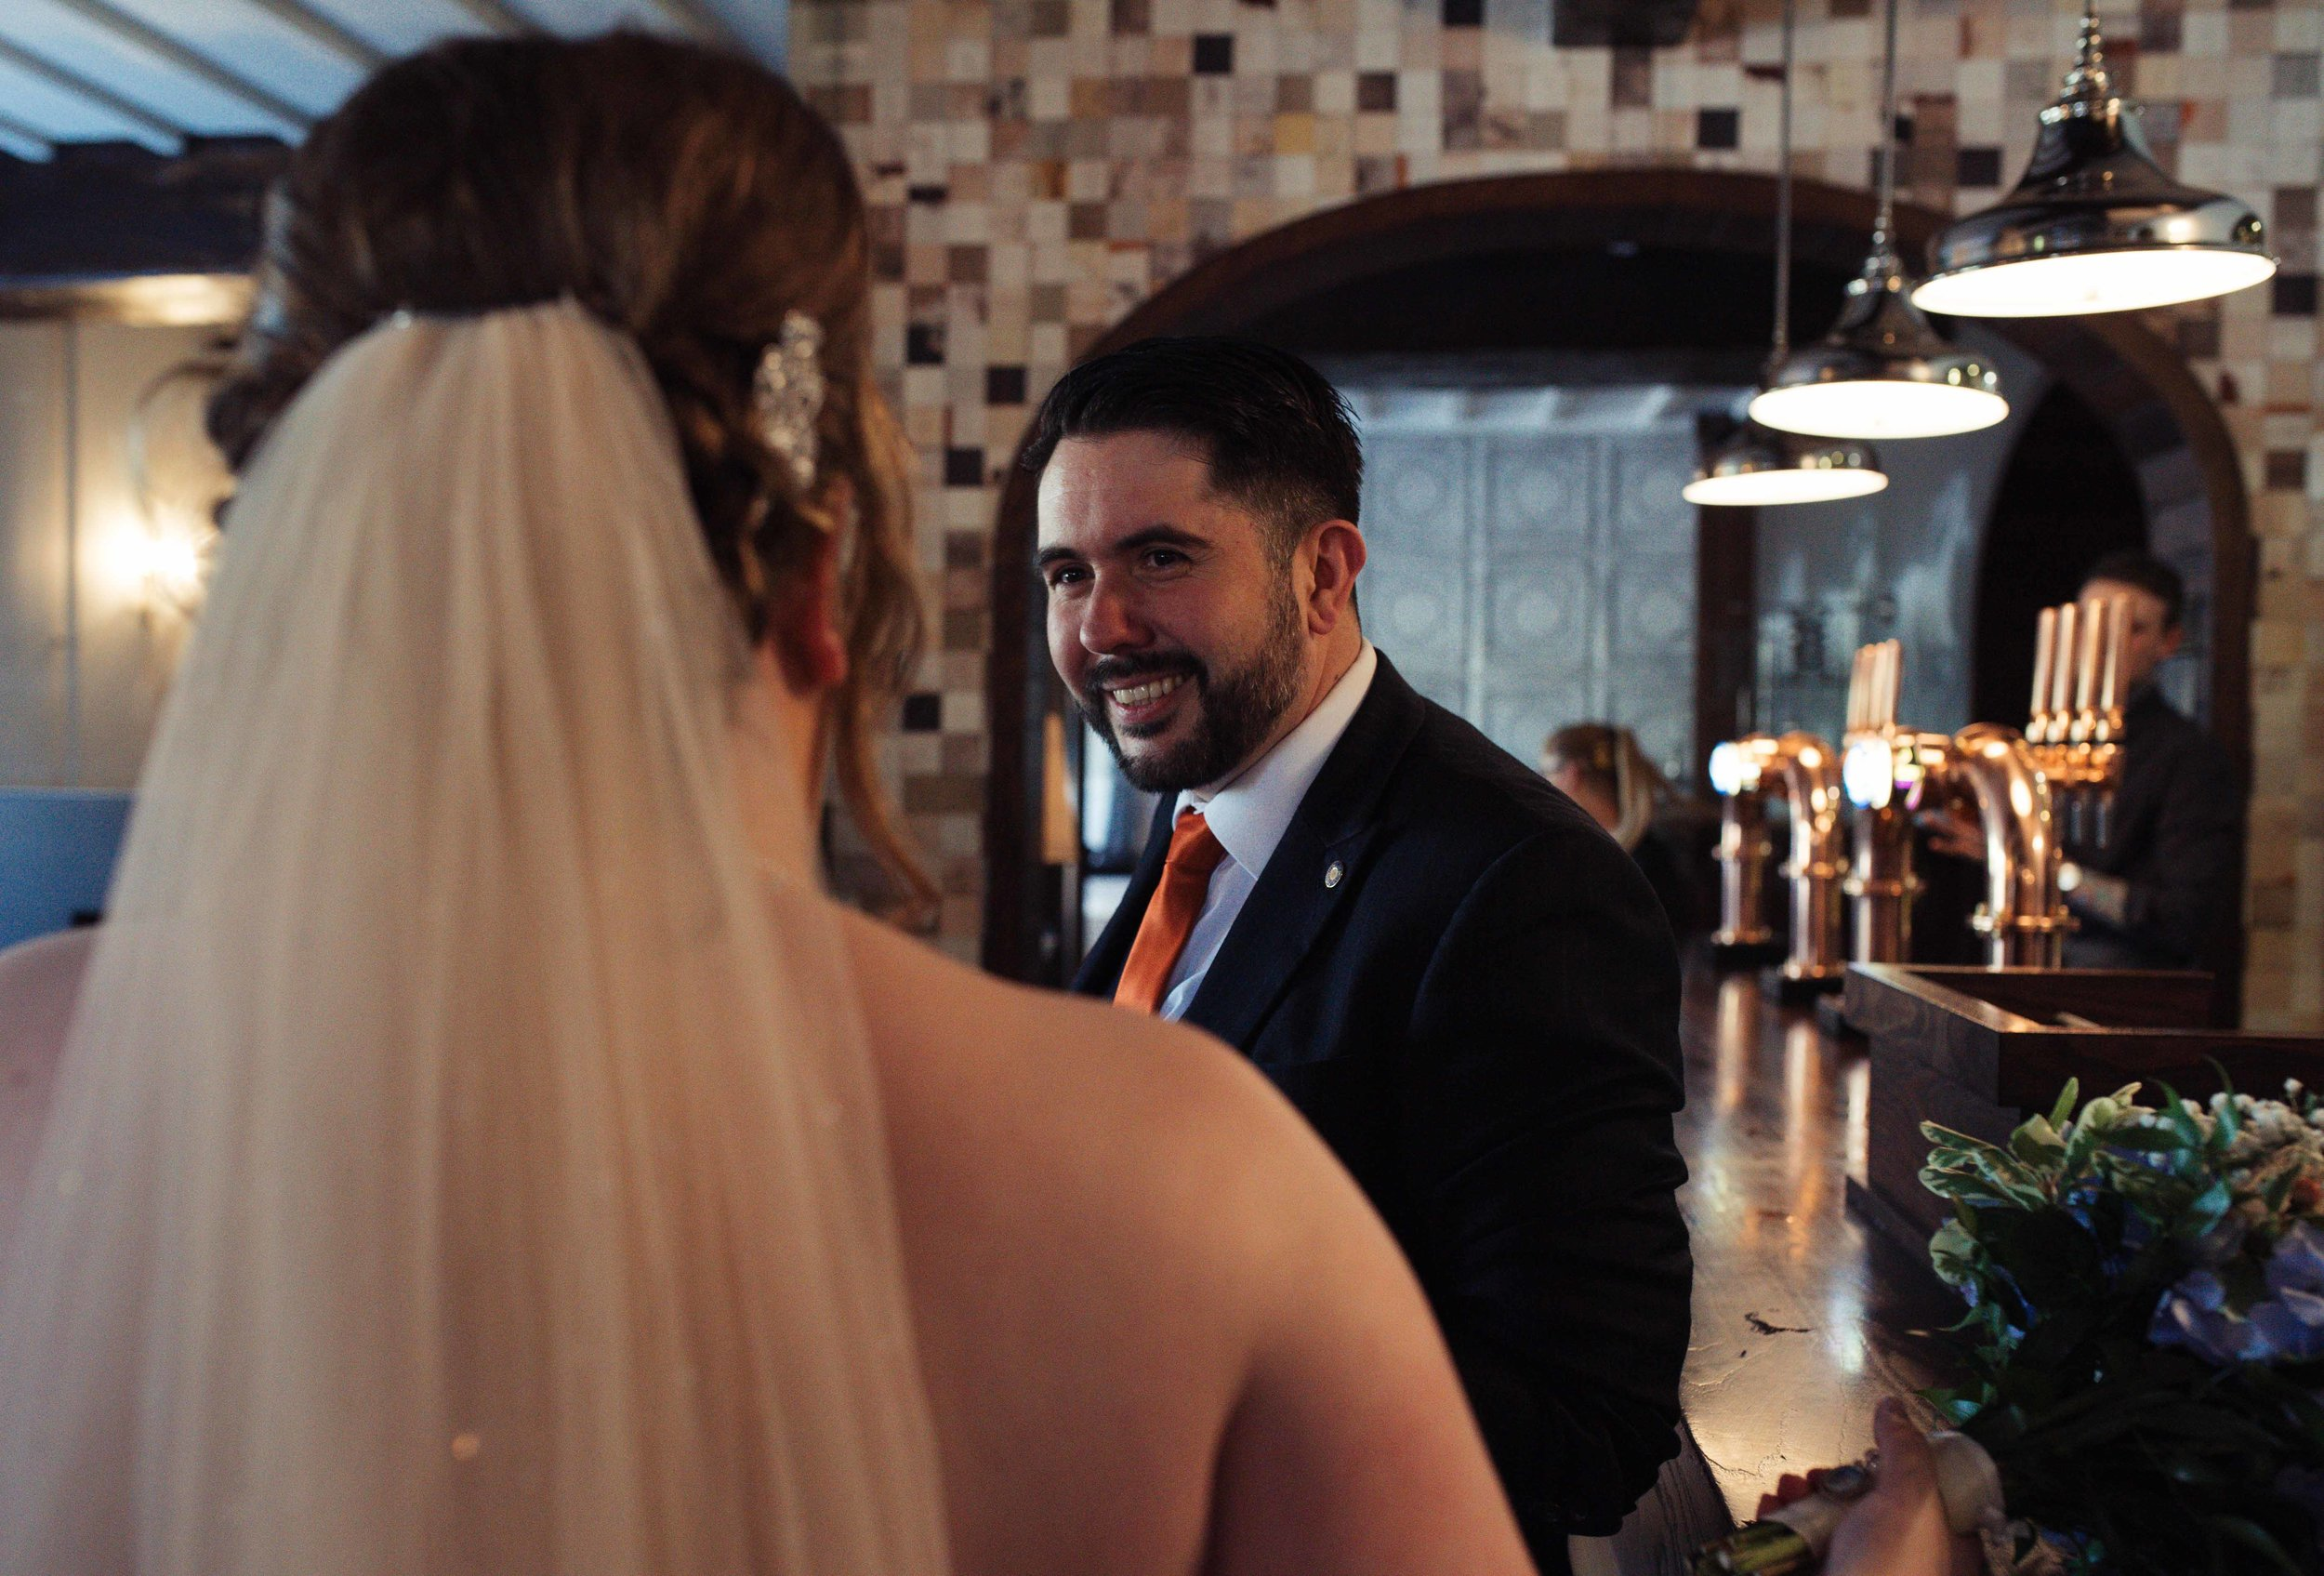 Male wedding guest stands at the bar and chats with the bride